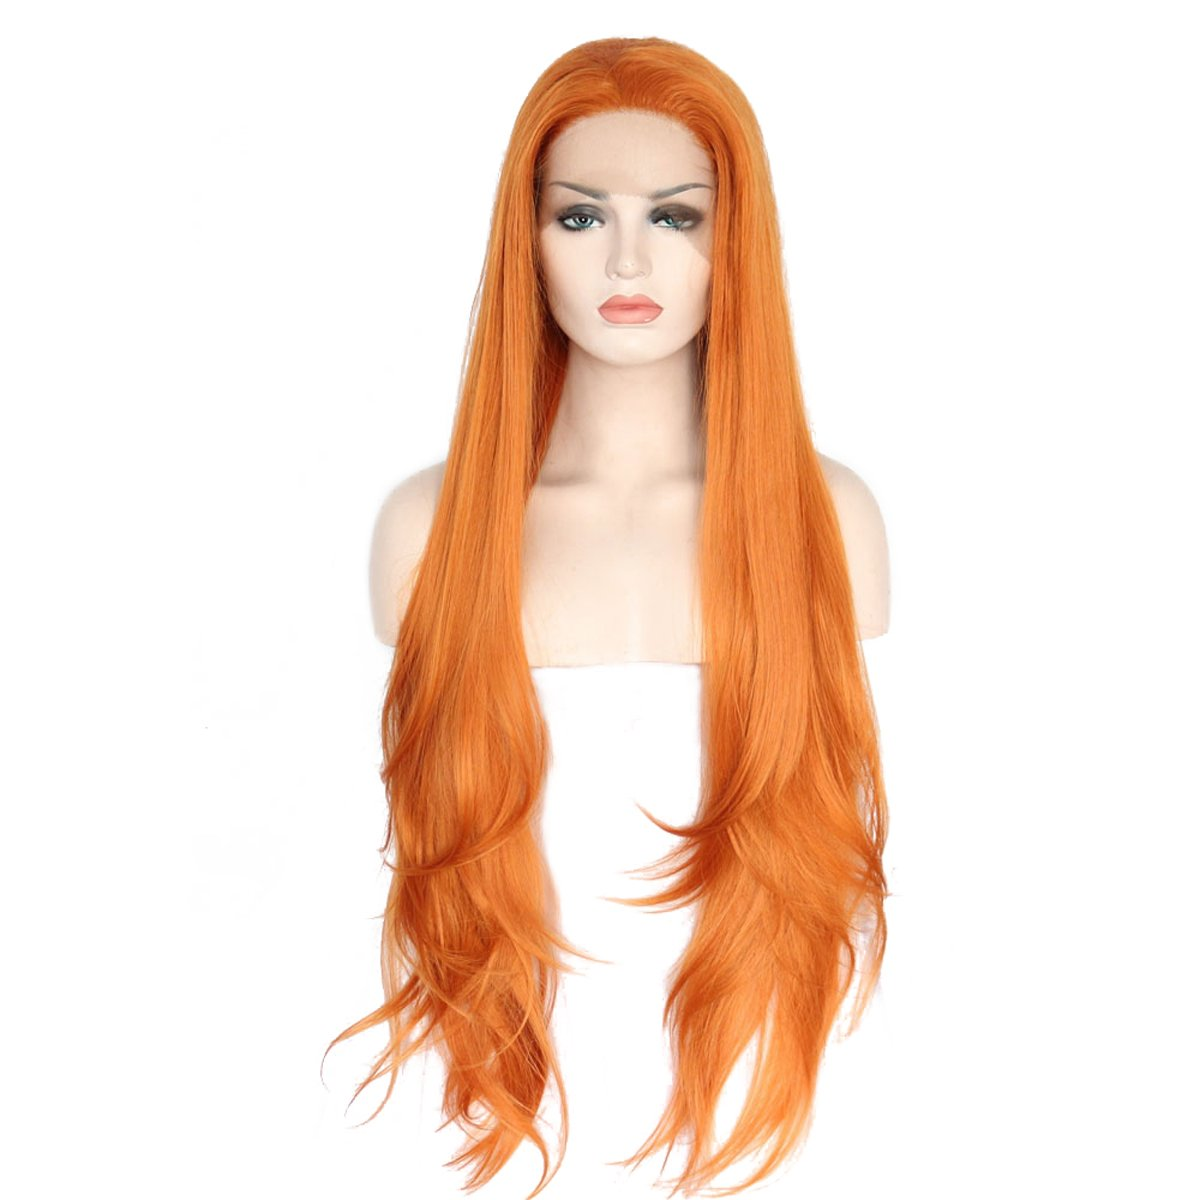 Amazon.com   Ebingoo Orange Lace Front Wig Long Straight Silky Hair Heat  Resistant Synthetic Fiber Wavy Full Wigs for Women (26 inches)   Beauty e6ddb9fa5